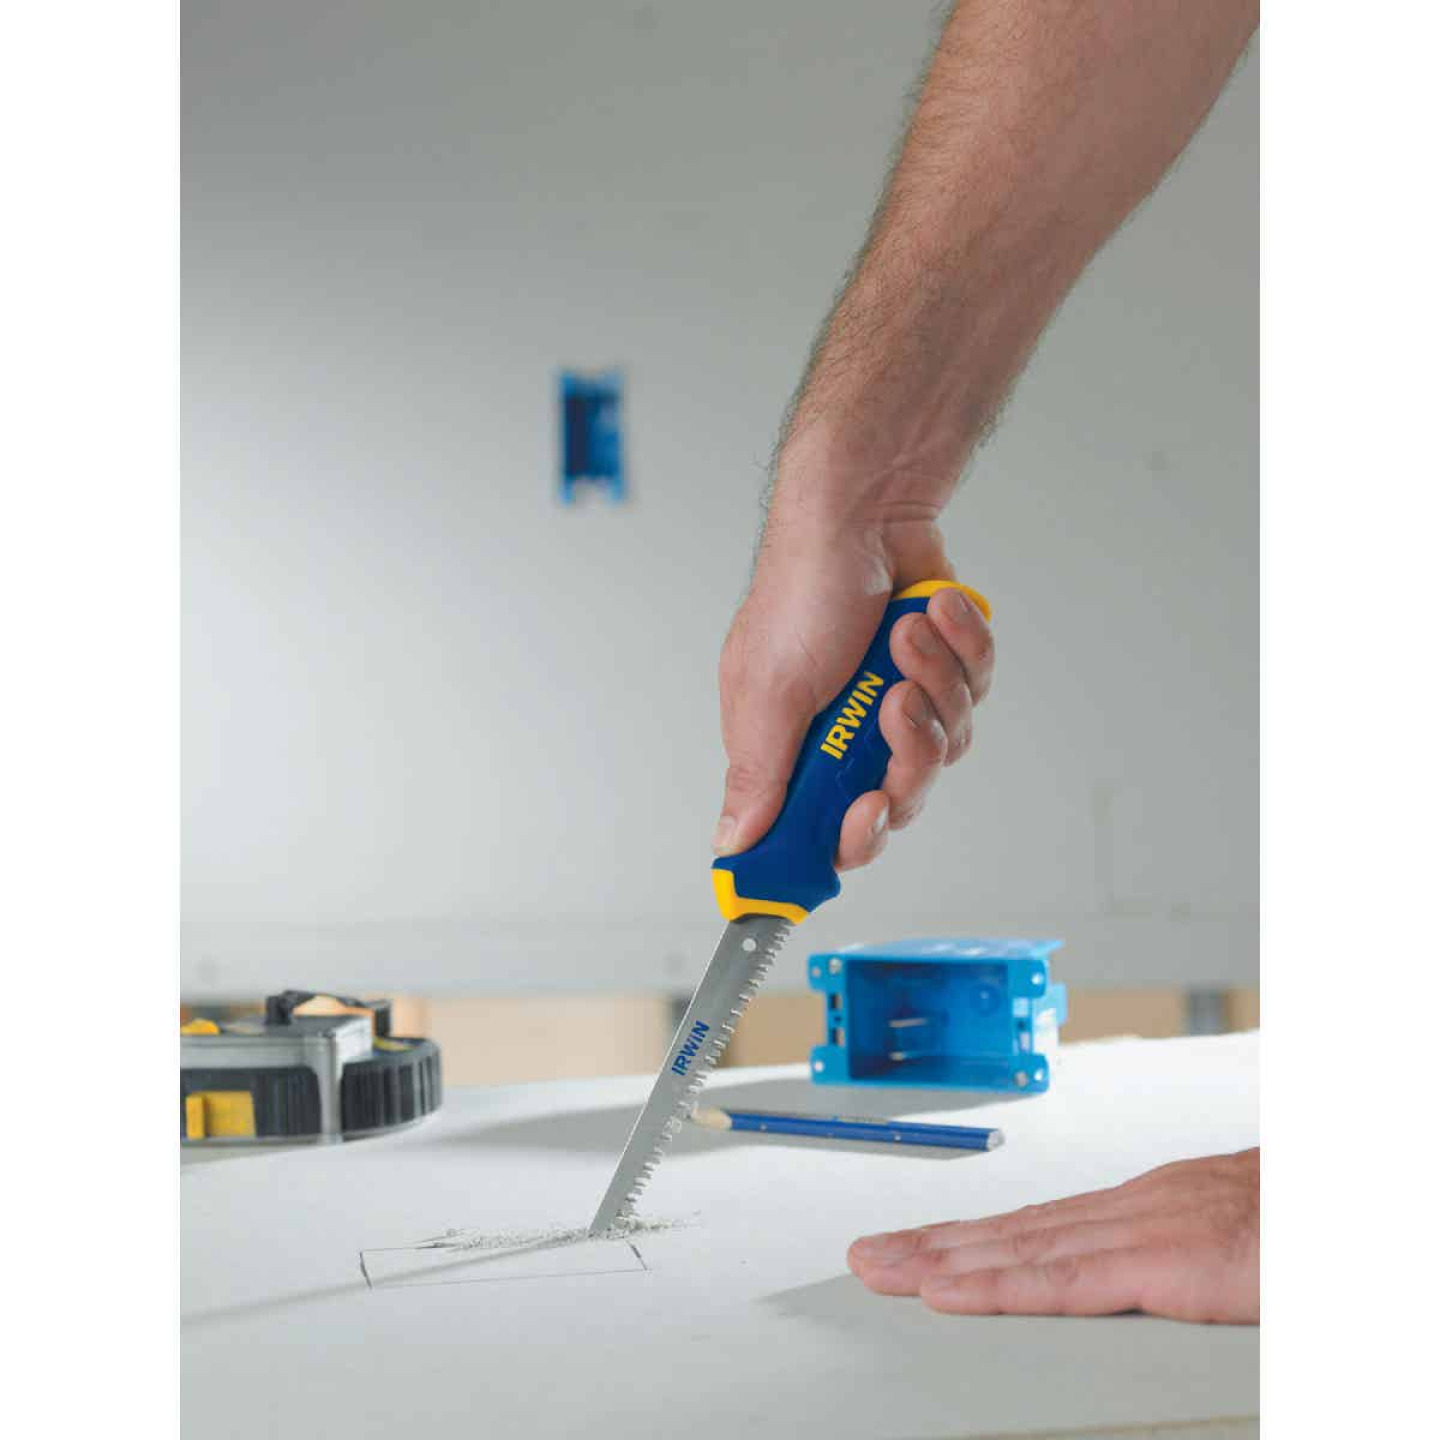 Irwin ProTouch 6-1/2 In. 9 TPI Drywall Jab Saw Image 3